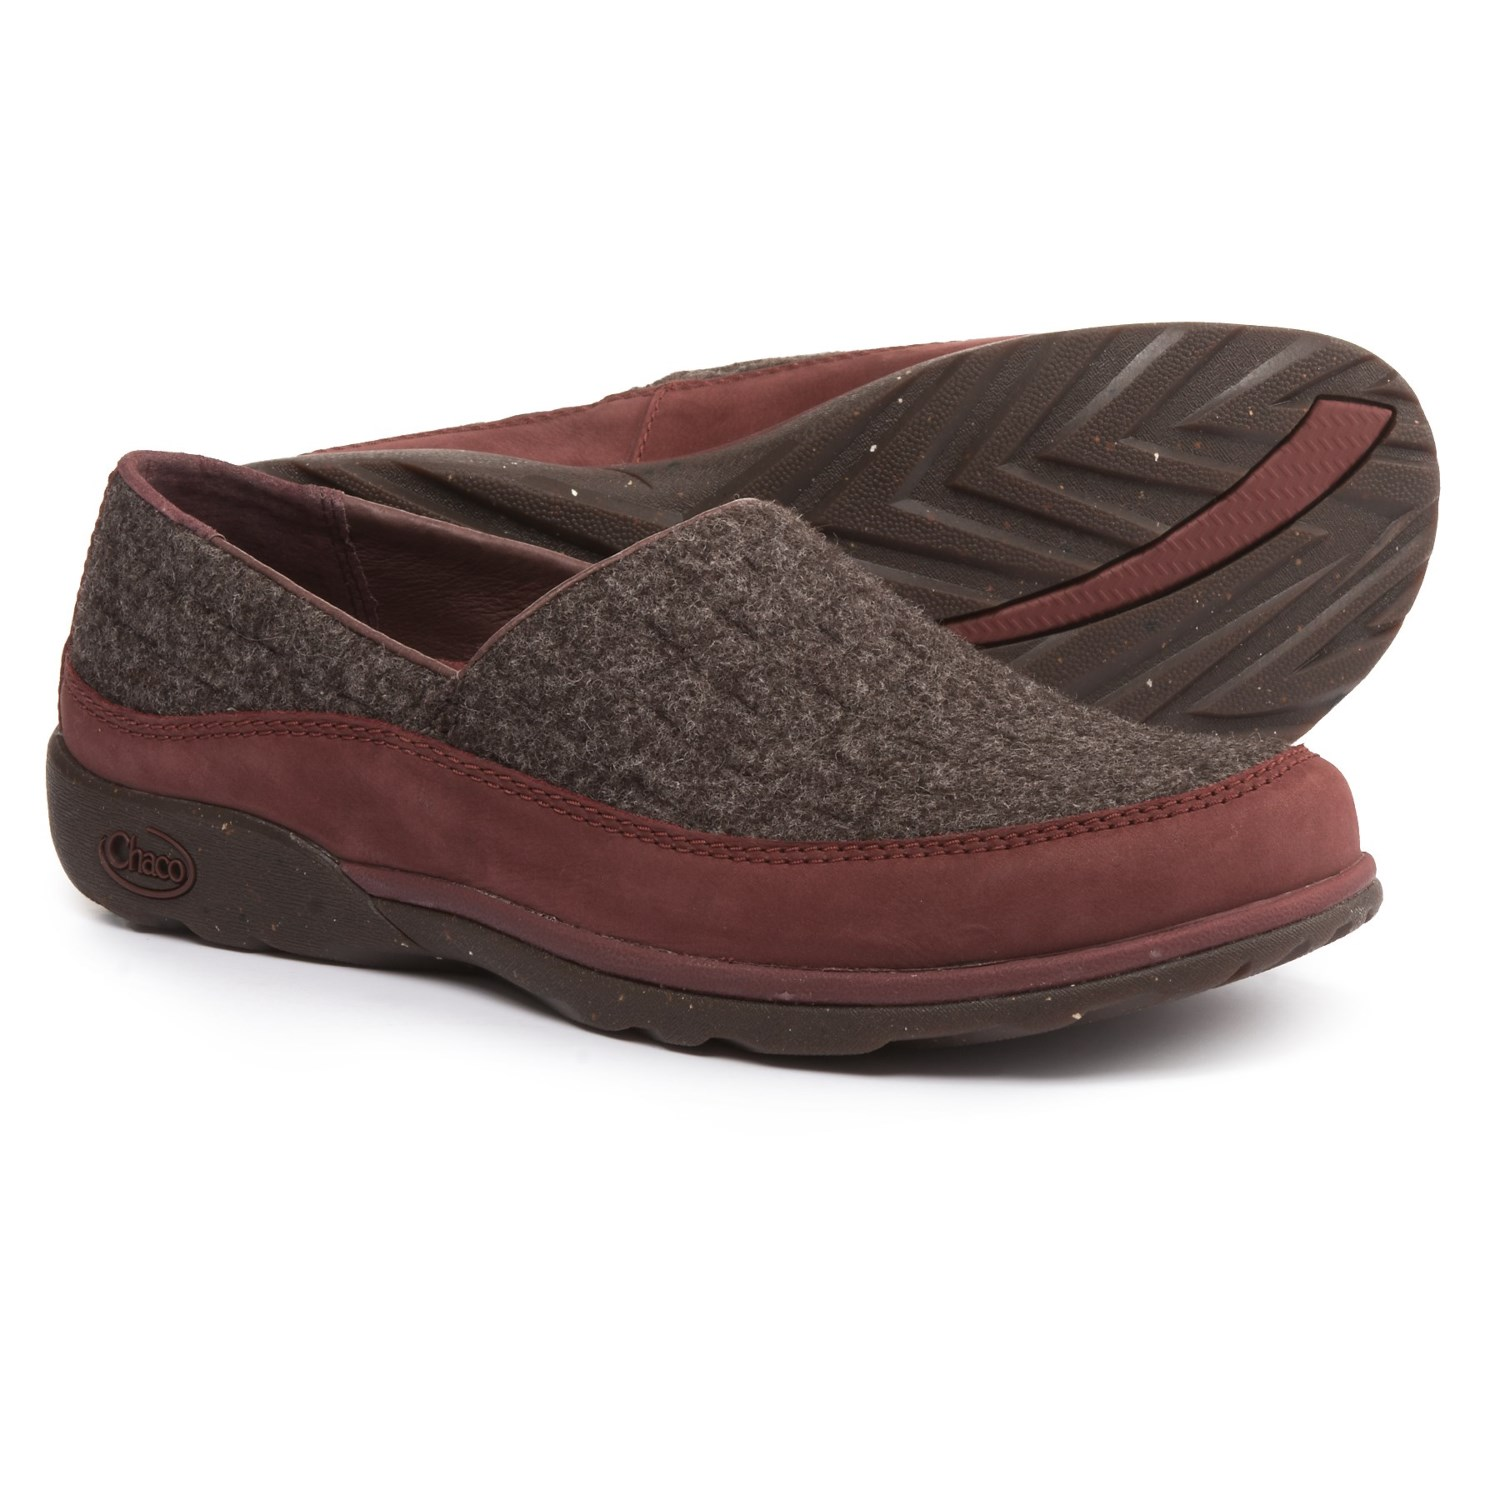 Chaco Sloan Shoes Slip Ons For Women In Baker Chocolate